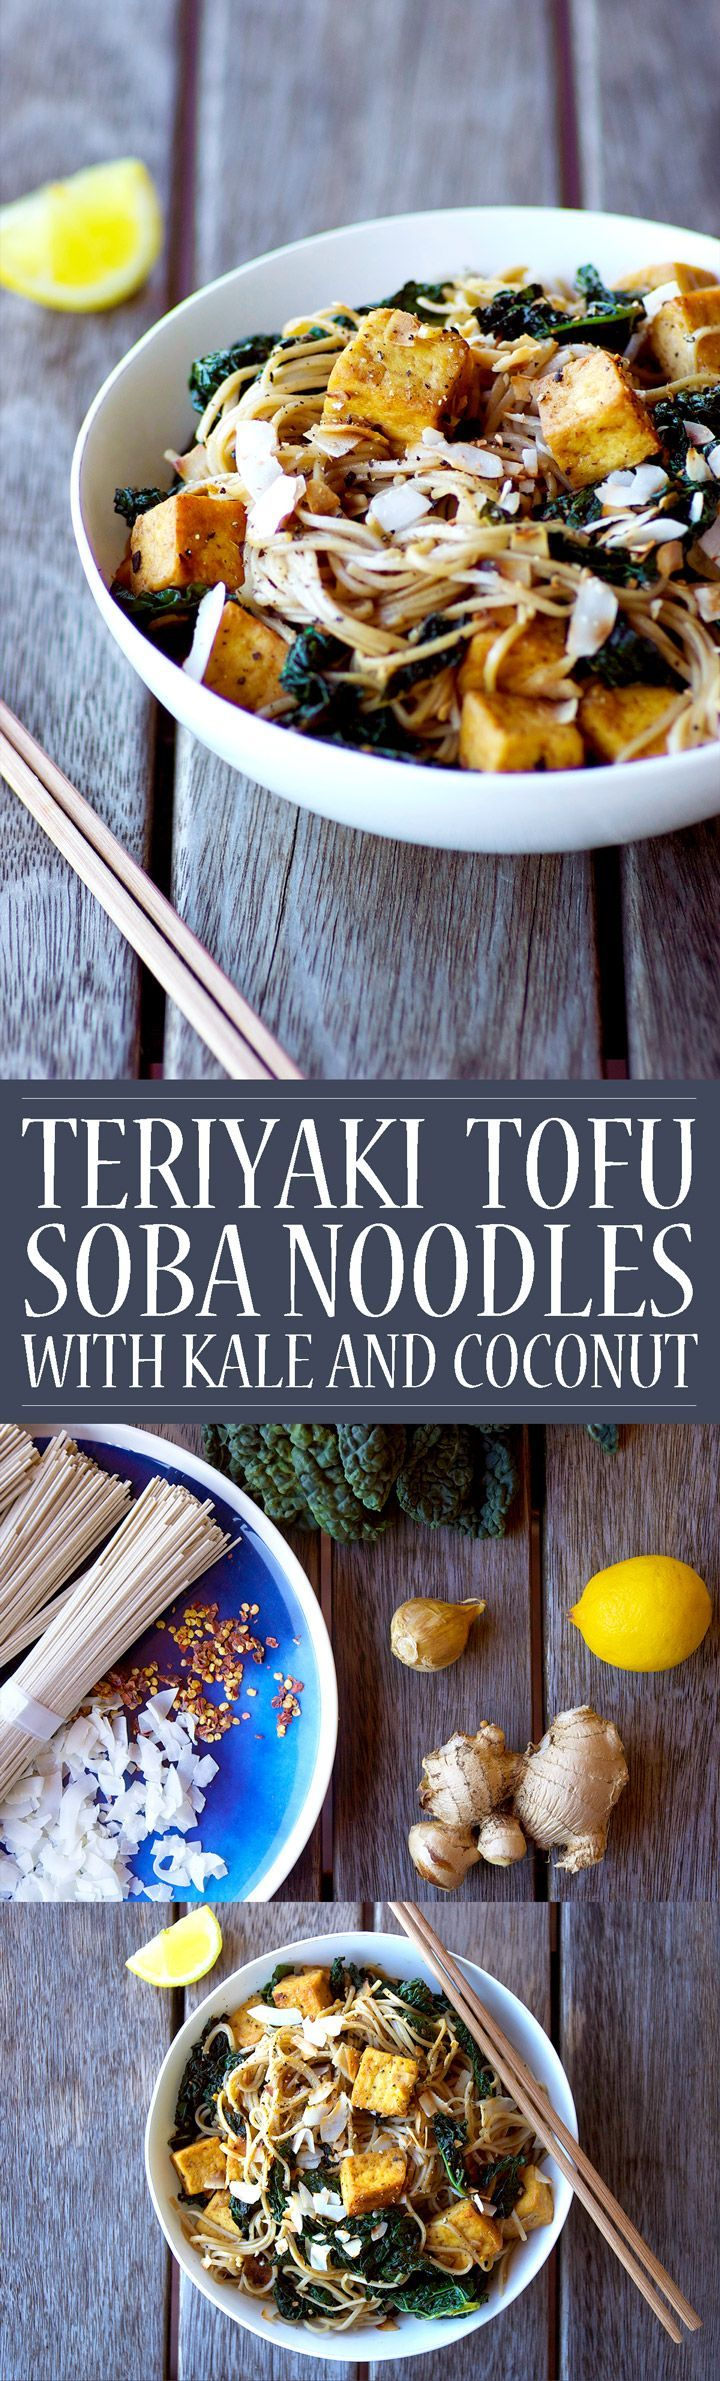 Teriyaki Tofu Soba Noodles with Kale and Coconut! Vegan, gluten free, grain free